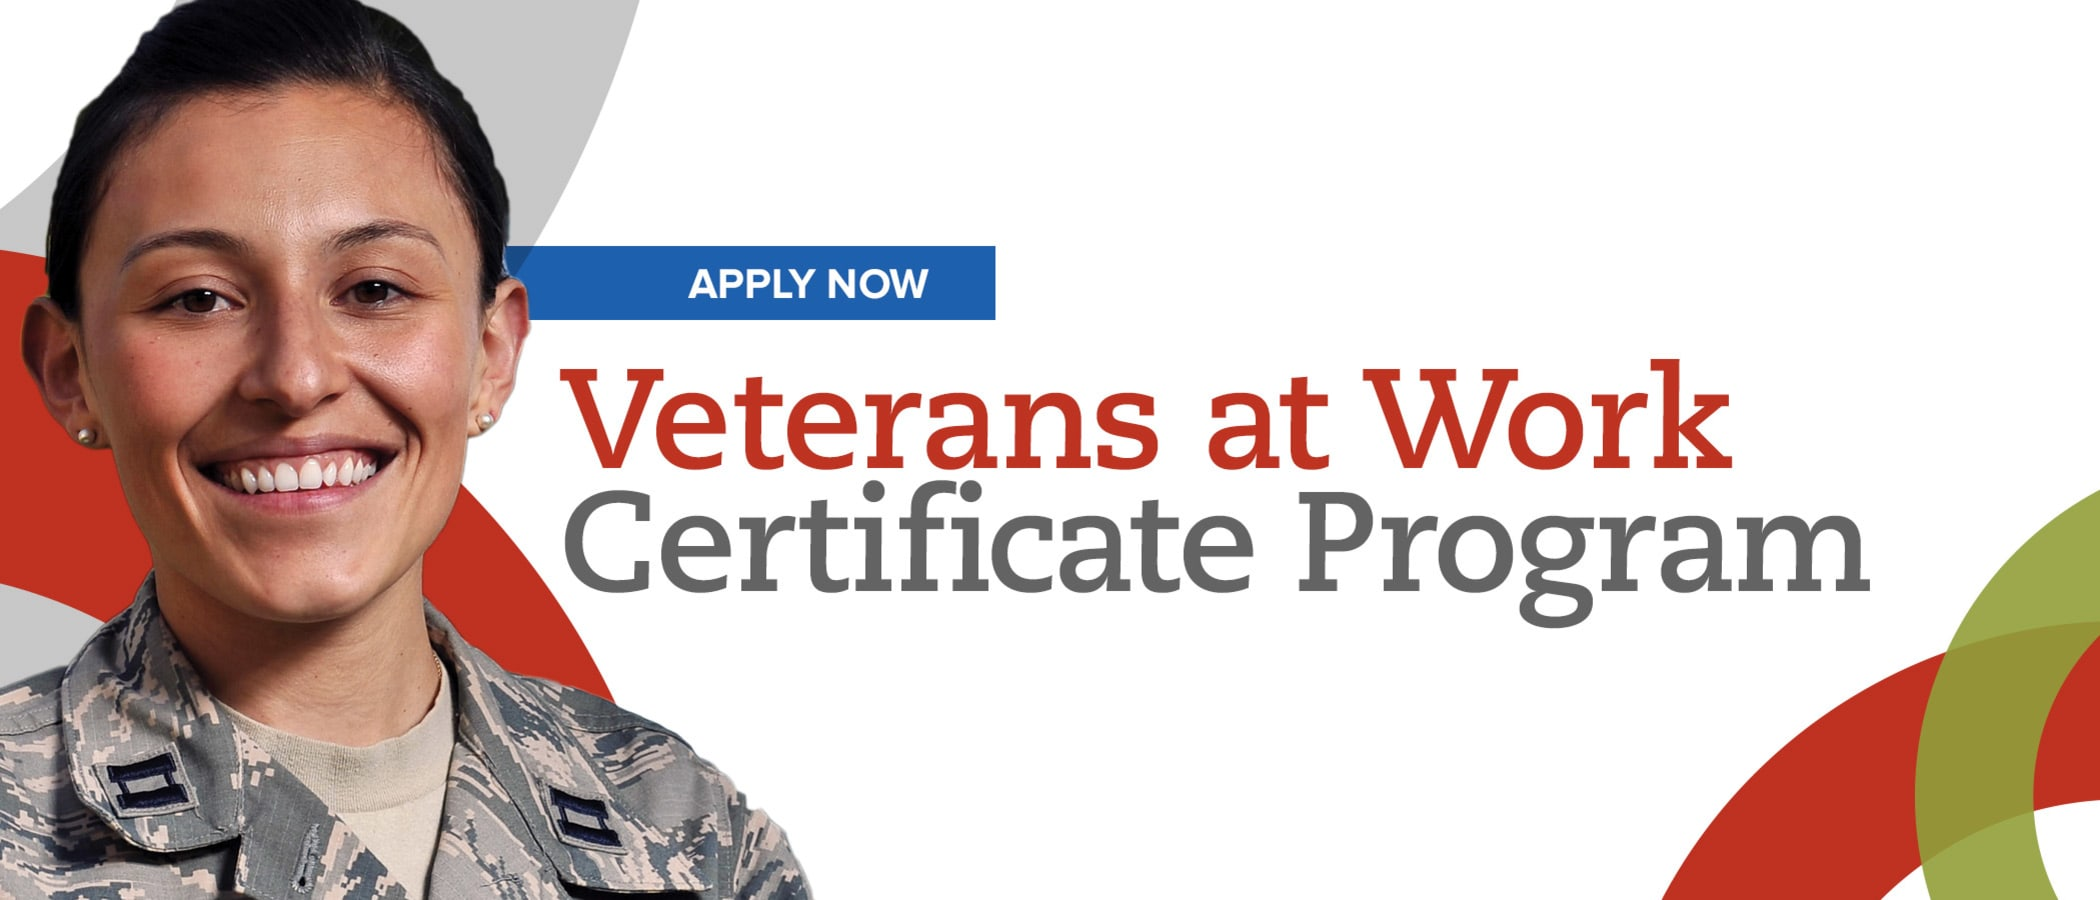 SHRM Foundation's Veterans at Work Certificate Program